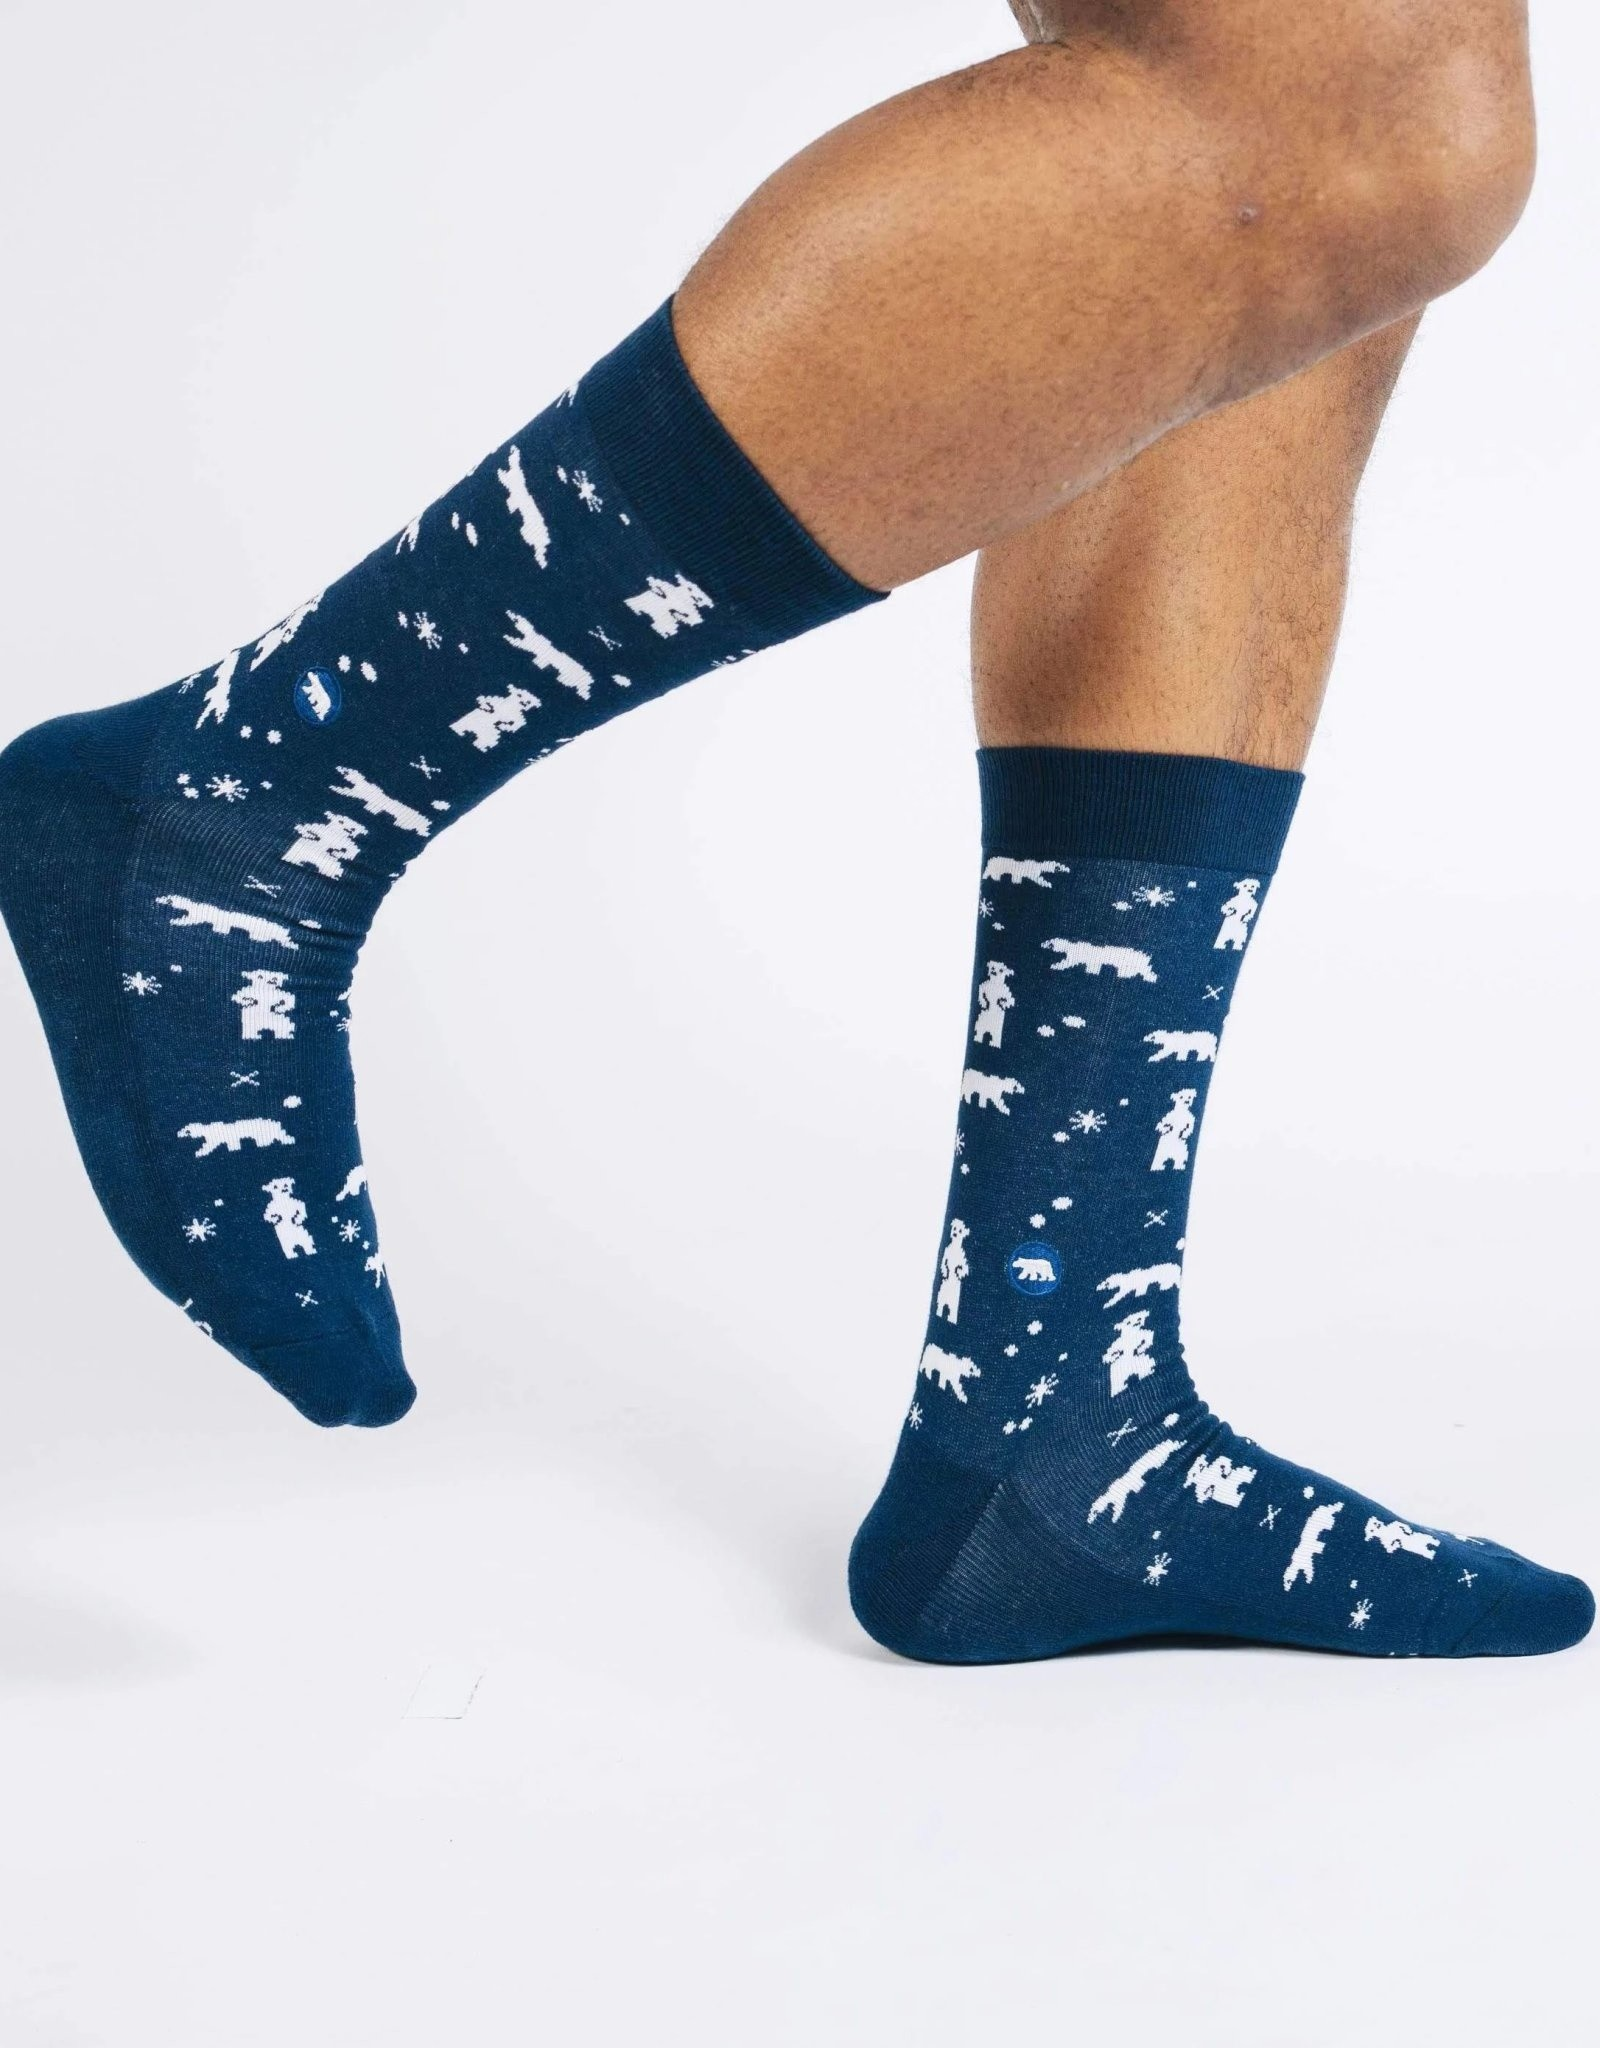 Socks that Protect the Arctic